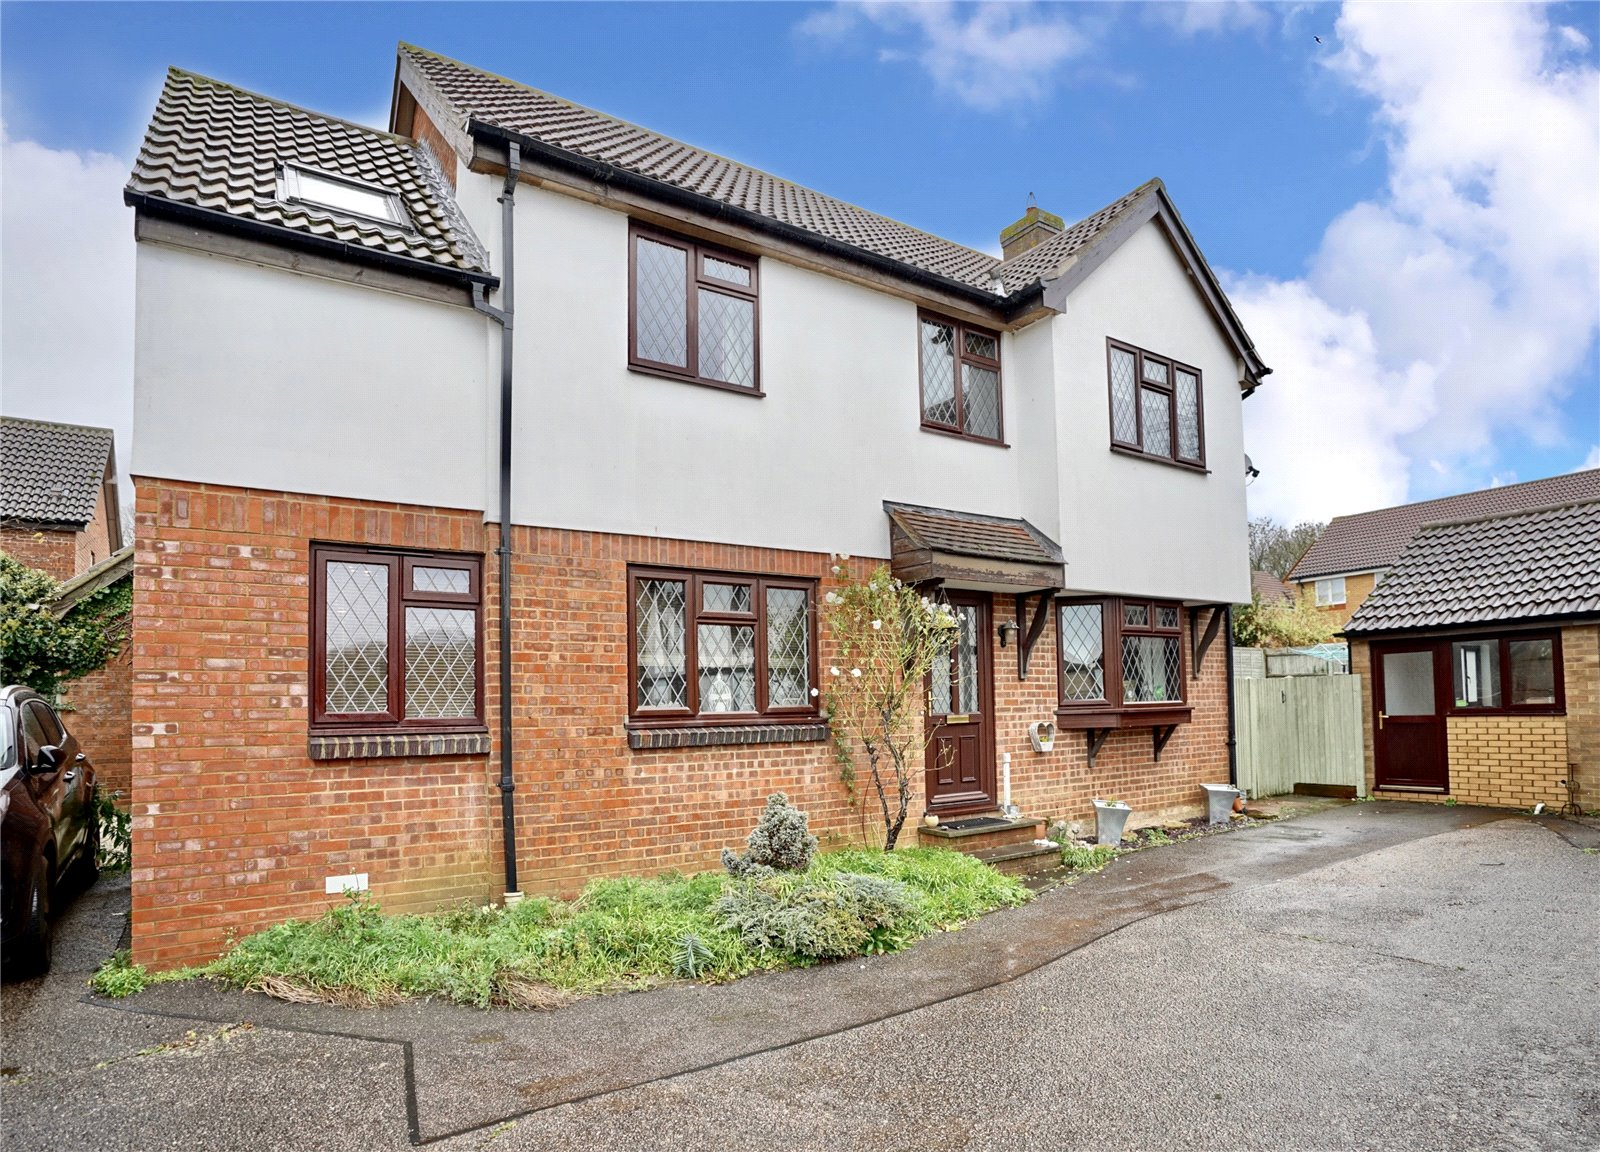 4 bed house for sale in Papworth Everard, CB23 3UQ, CB23